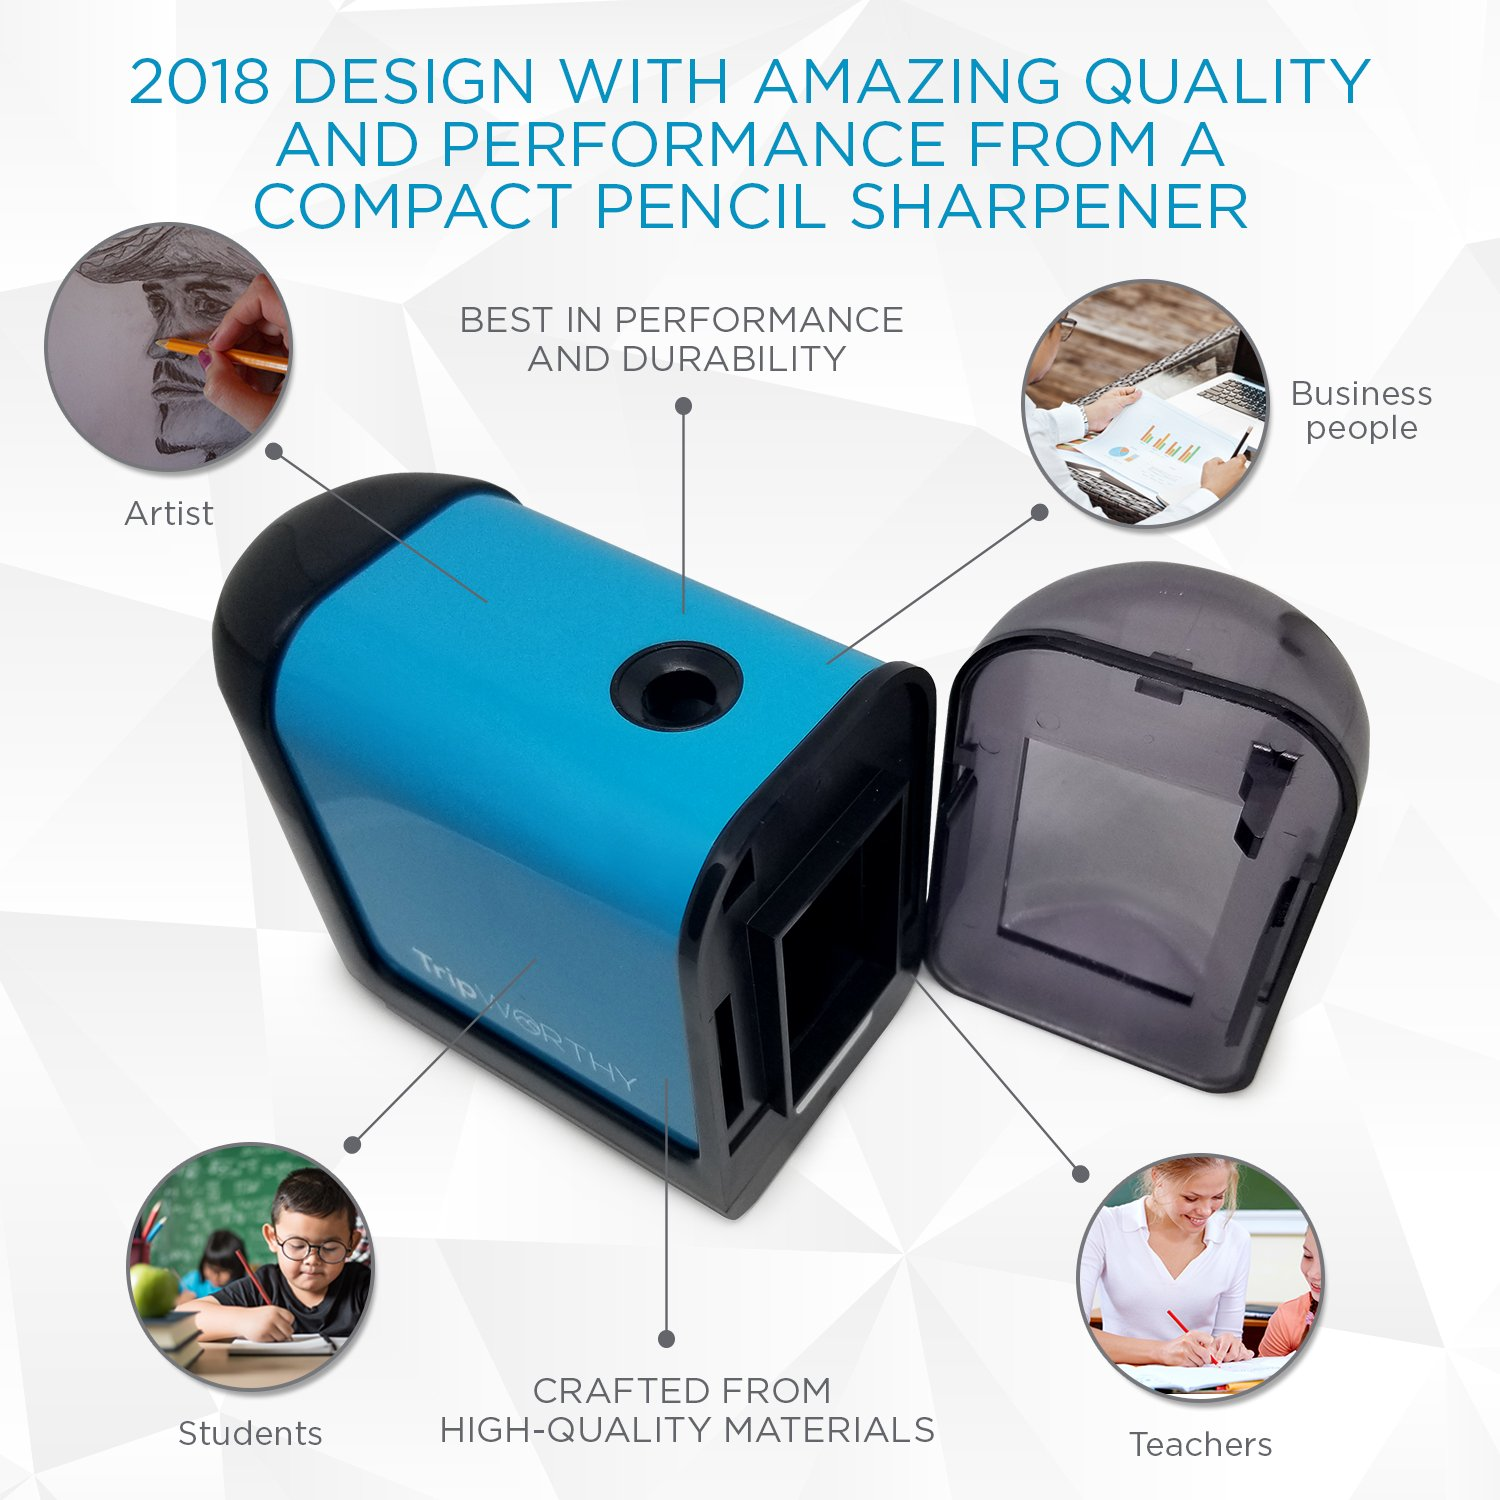 and Professionals 2 and Colored Pencils - Small and Durable Drawing, Coloring Electric Pencil Sharpener Artist No Cord Battery Operated Students Kid Friendly - Ideal For No